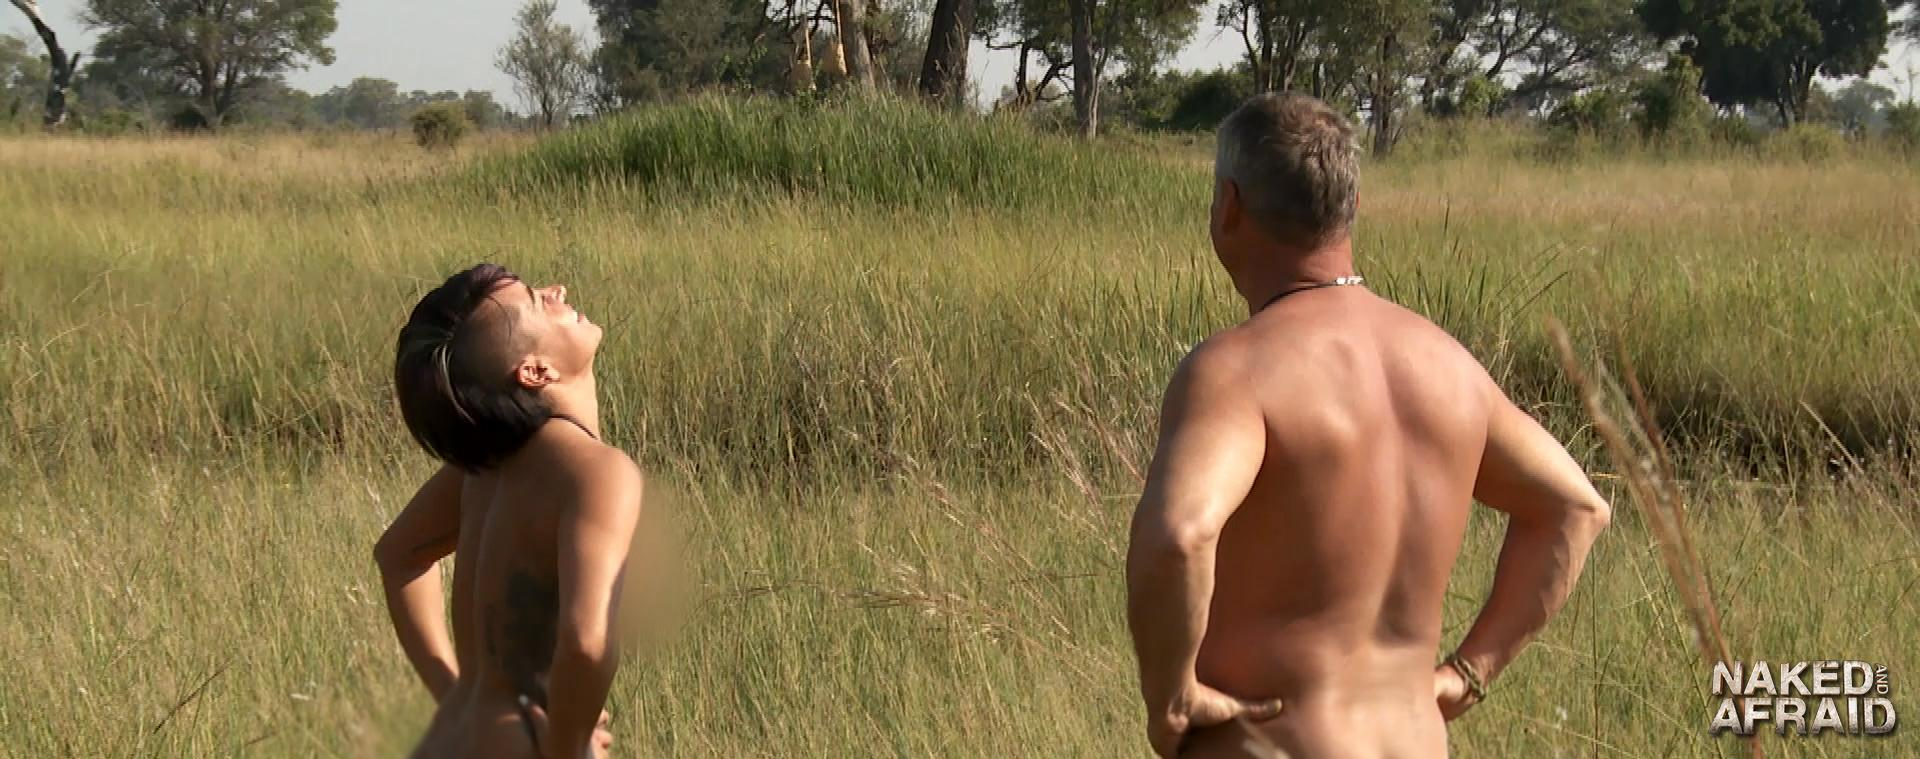 Naked And Afraid Laura Uncensored - Adult Videos-1415